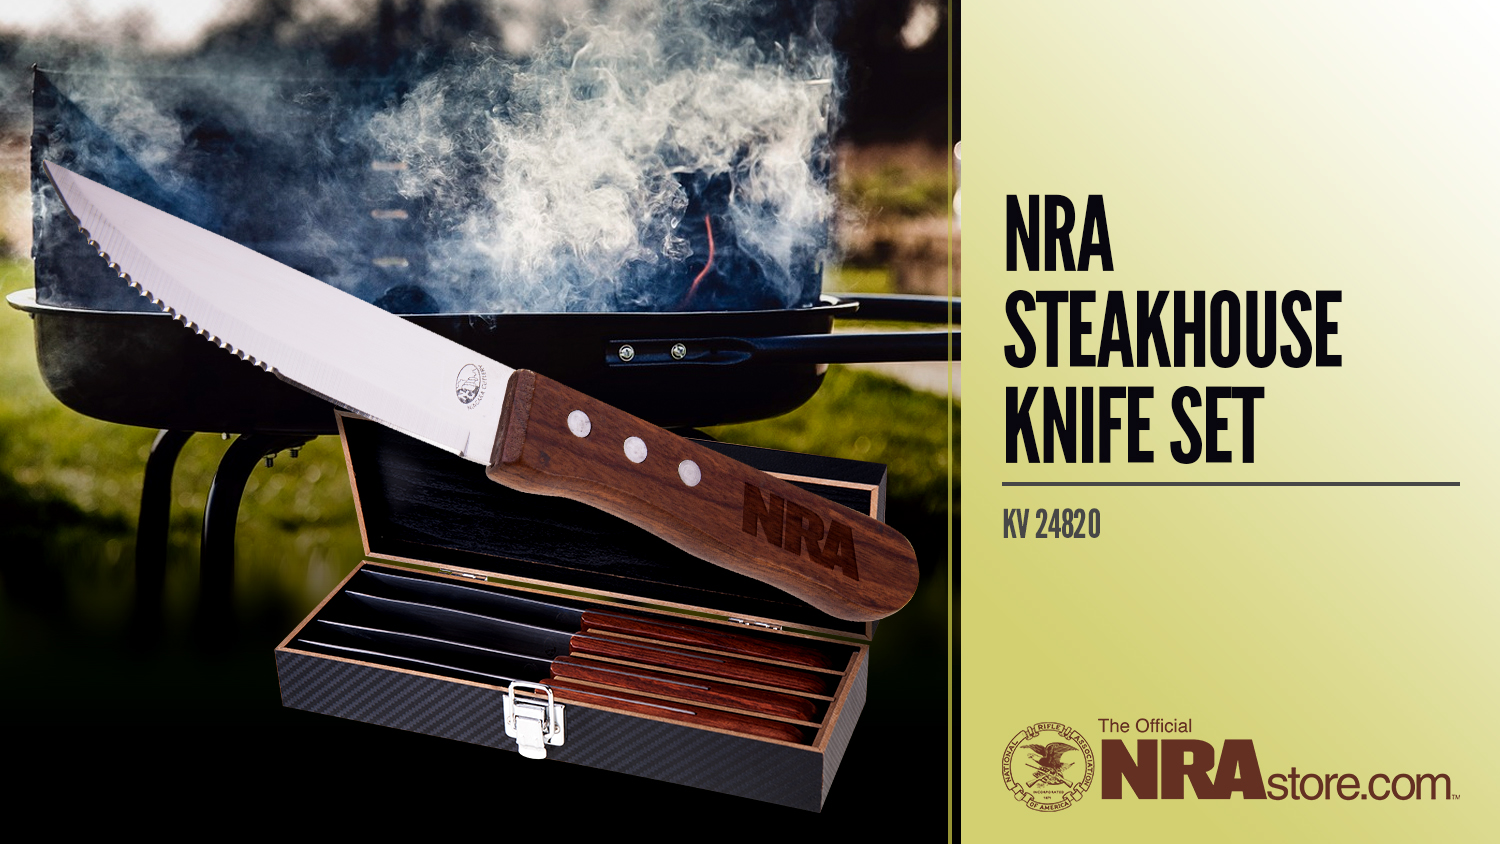 NRA Store Product: Steakhouse Knife Set